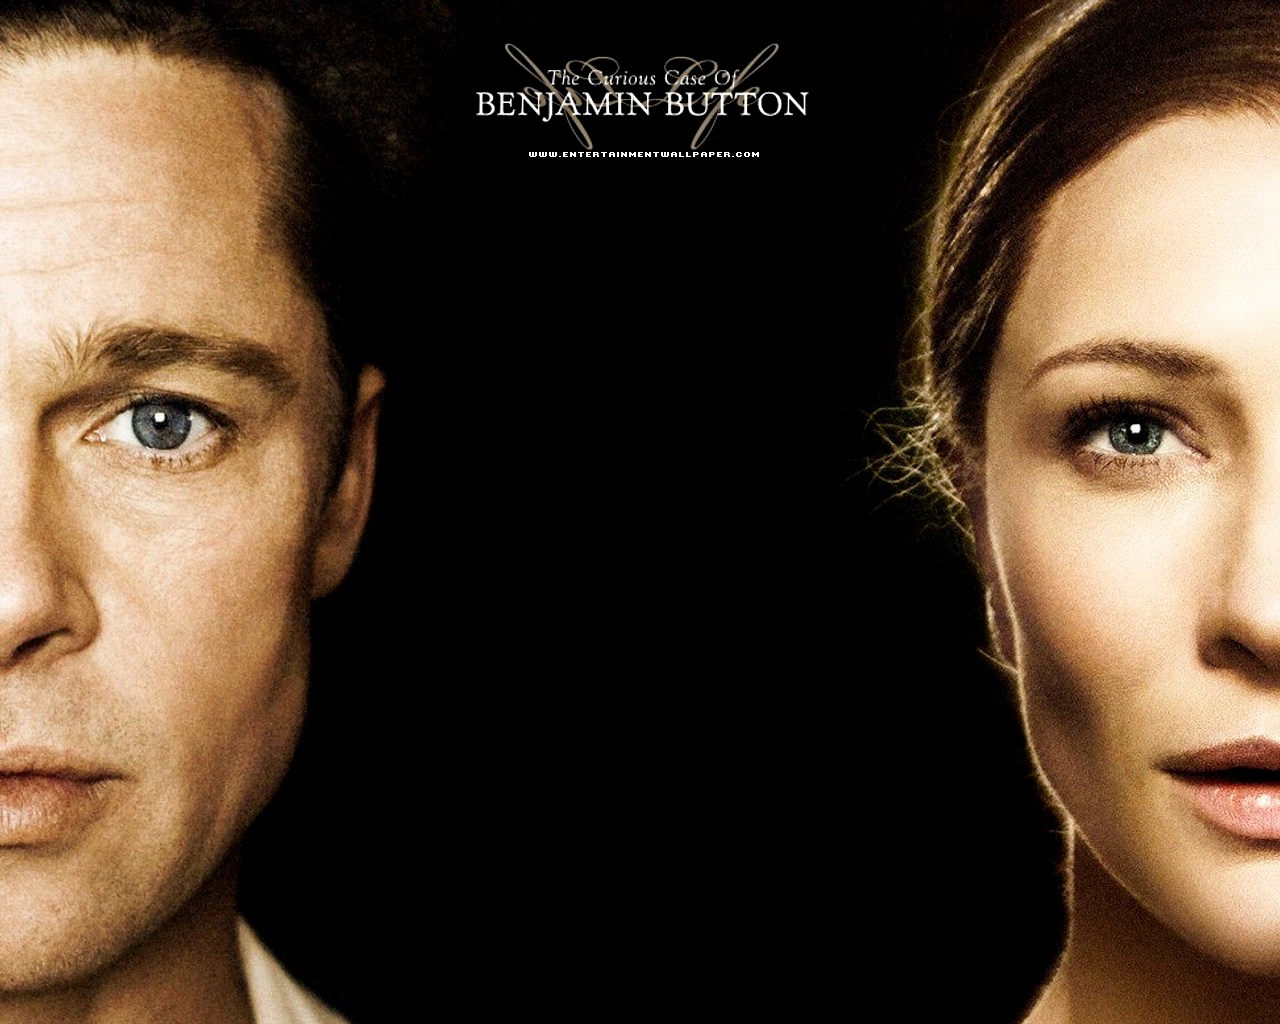 Magnolia: THE CURIOUS CASE OF BENJAMIN BUTTON